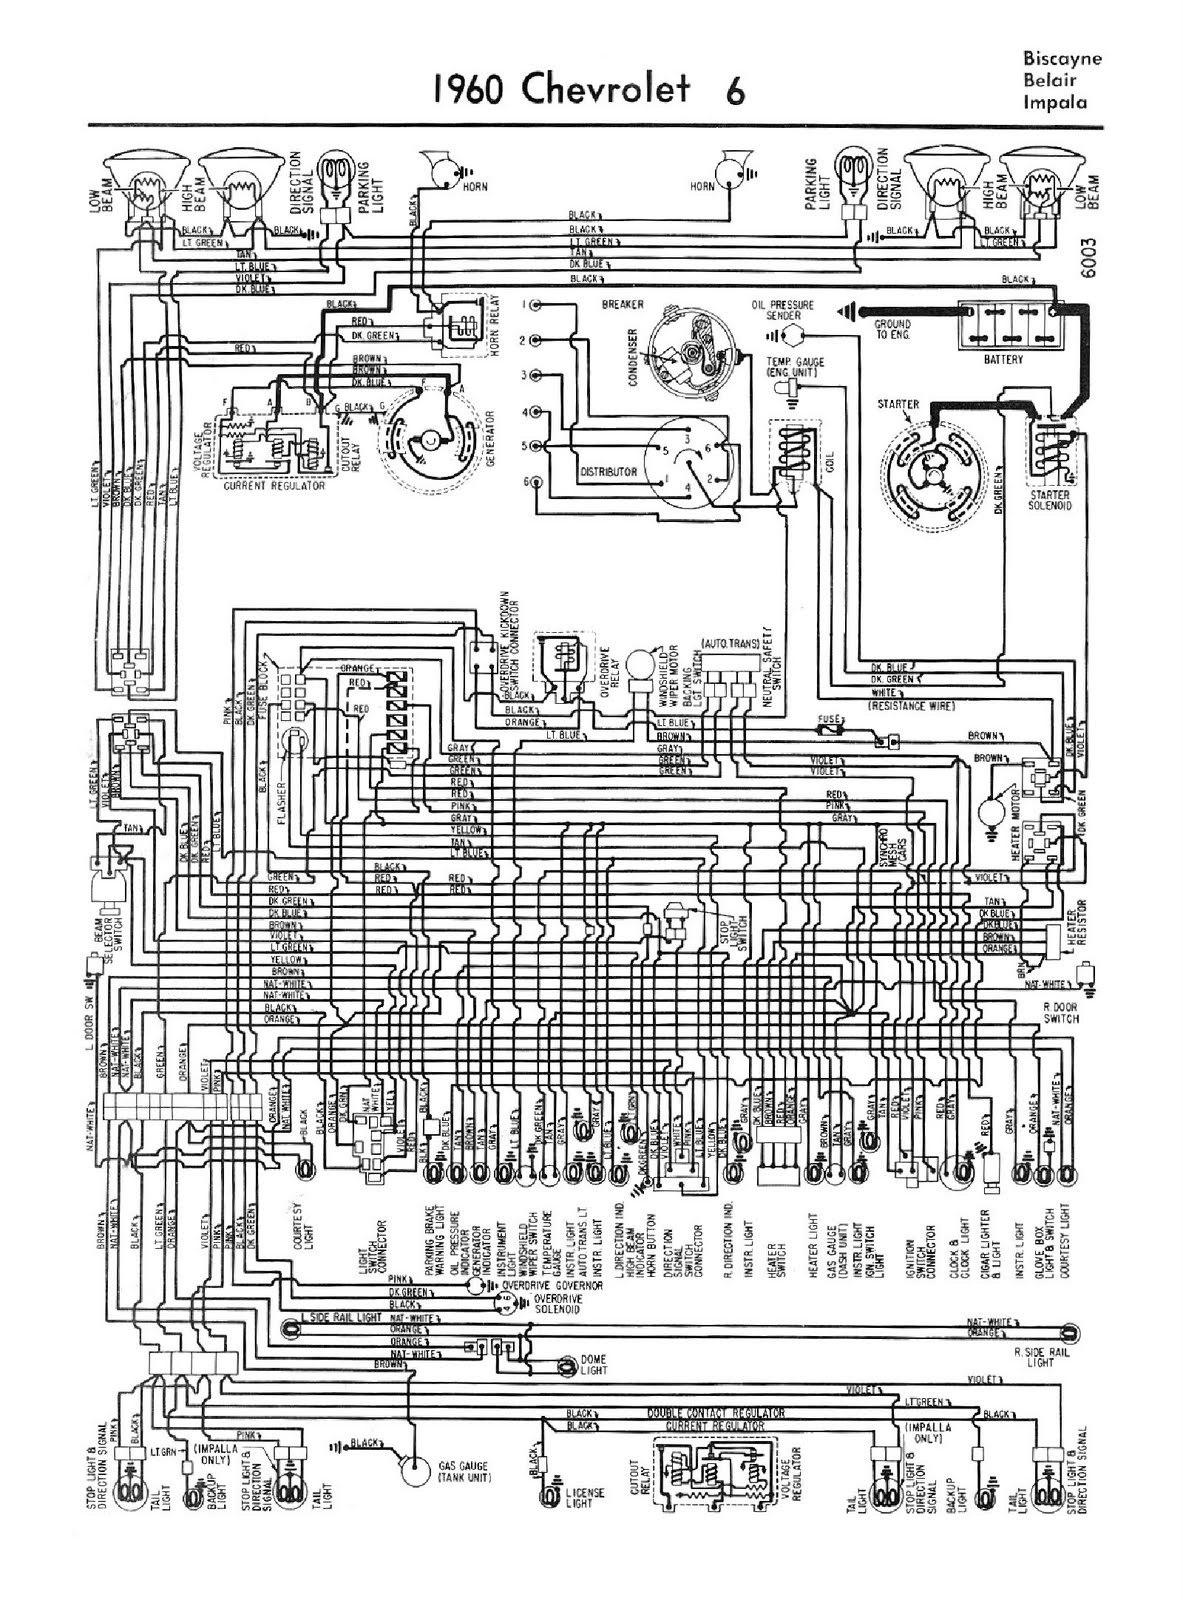 hight resolution of free auto wiring diagram 1960 chevrolet v6 biscayne belair and impala wiring diagram 97 cadillac deville